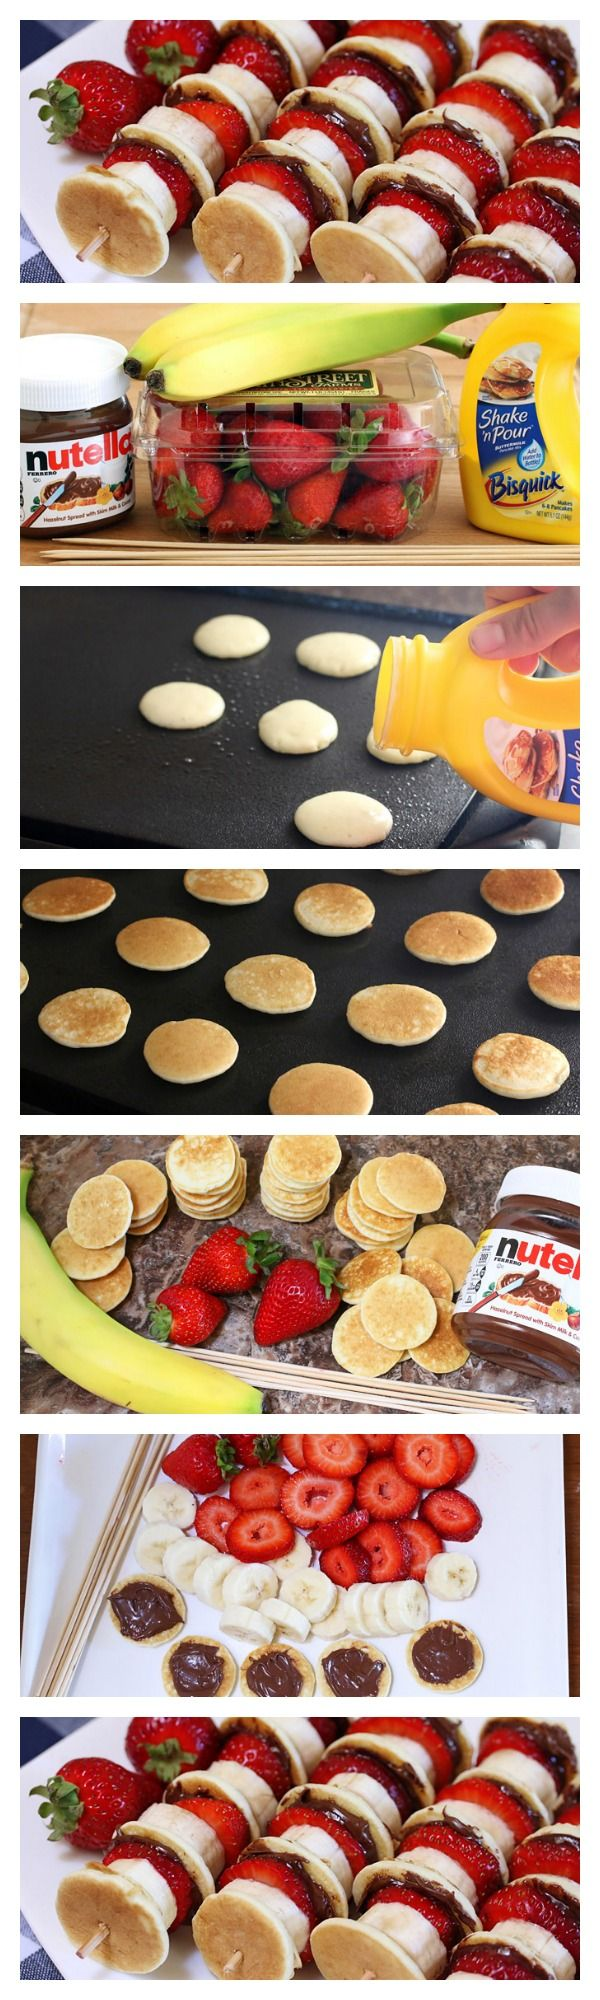 Nutella Mini Pancake Kabobs #chocolates #sweet #yummy #delicious #food #chocolaterecipes #choco